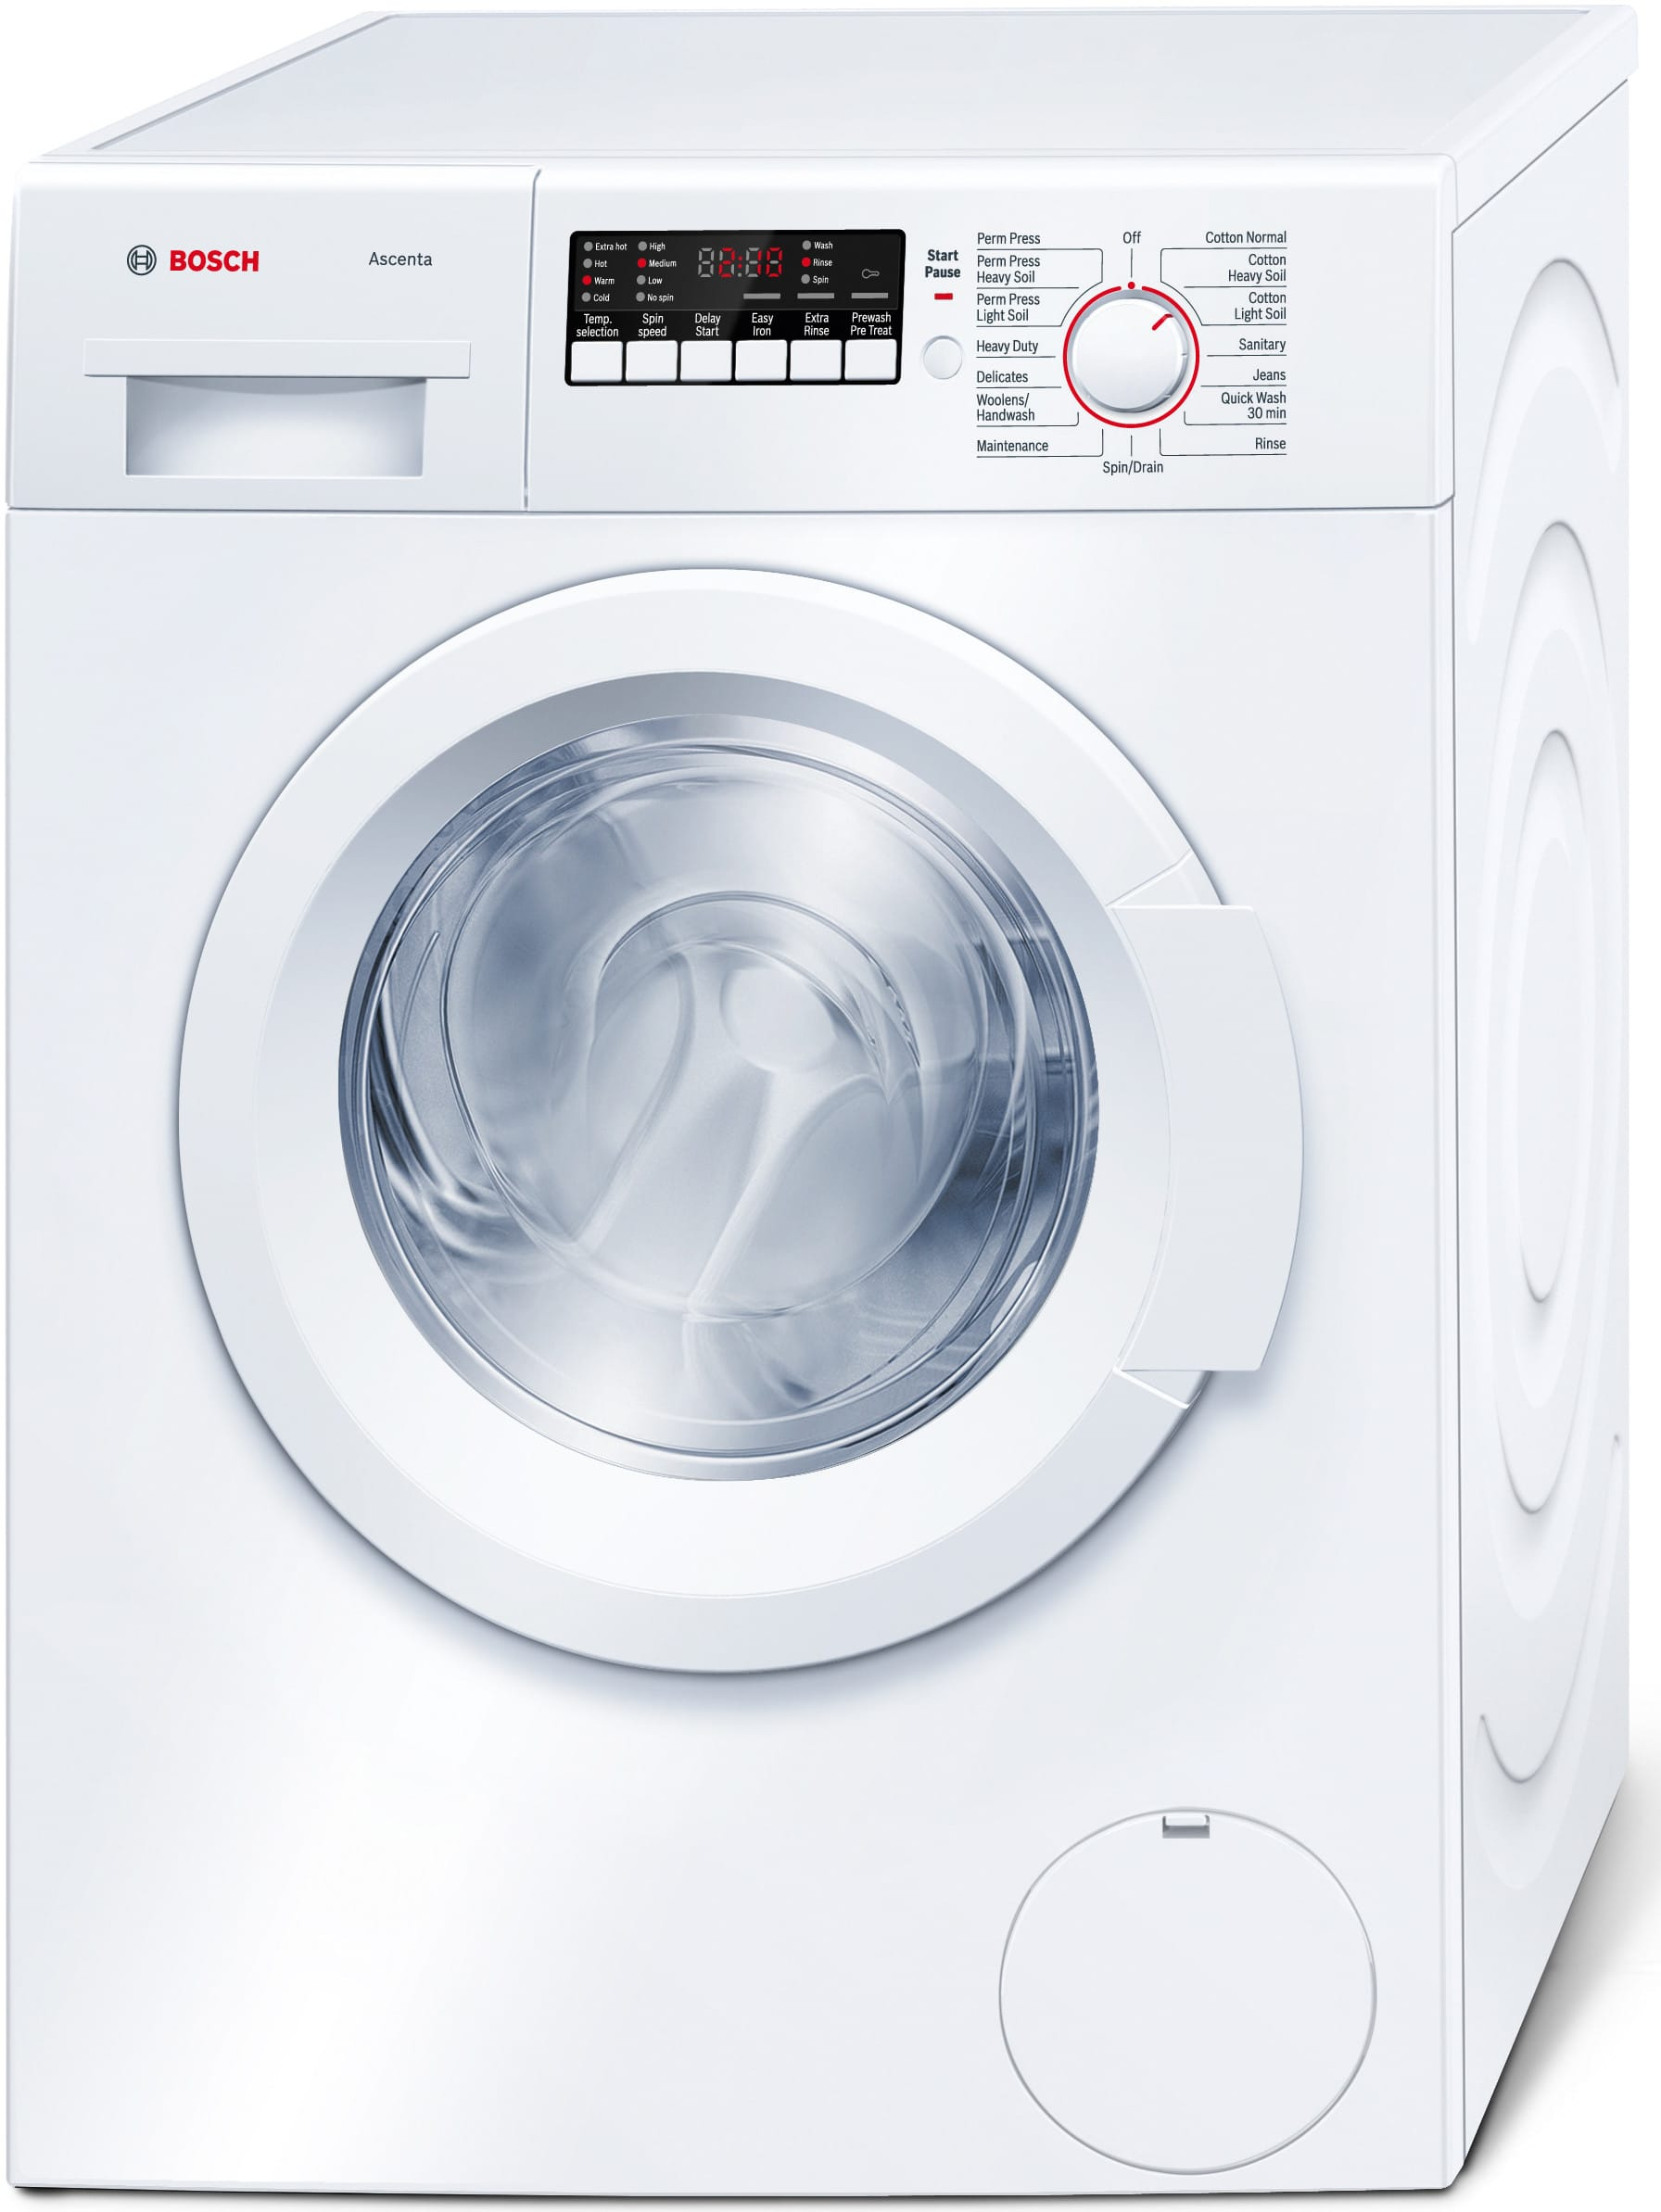 Bosch Wap24200uc 24 Inch Front Load Washer With 2 2 Cu Ft